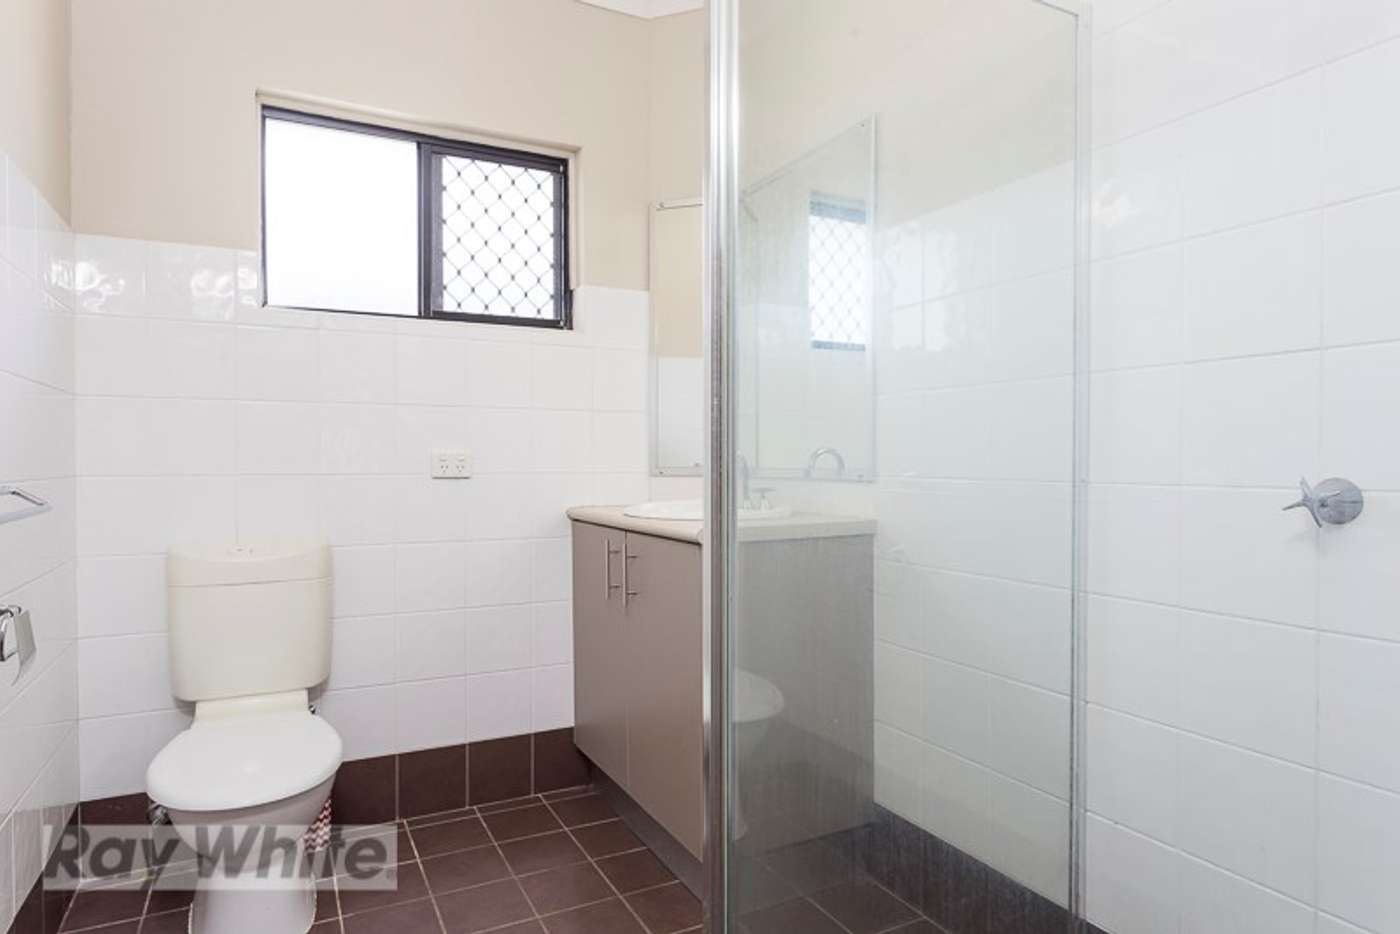 Fifth view of Homely unit listing, 5/8 Kitchener Street, Coorparoo QLD 4151